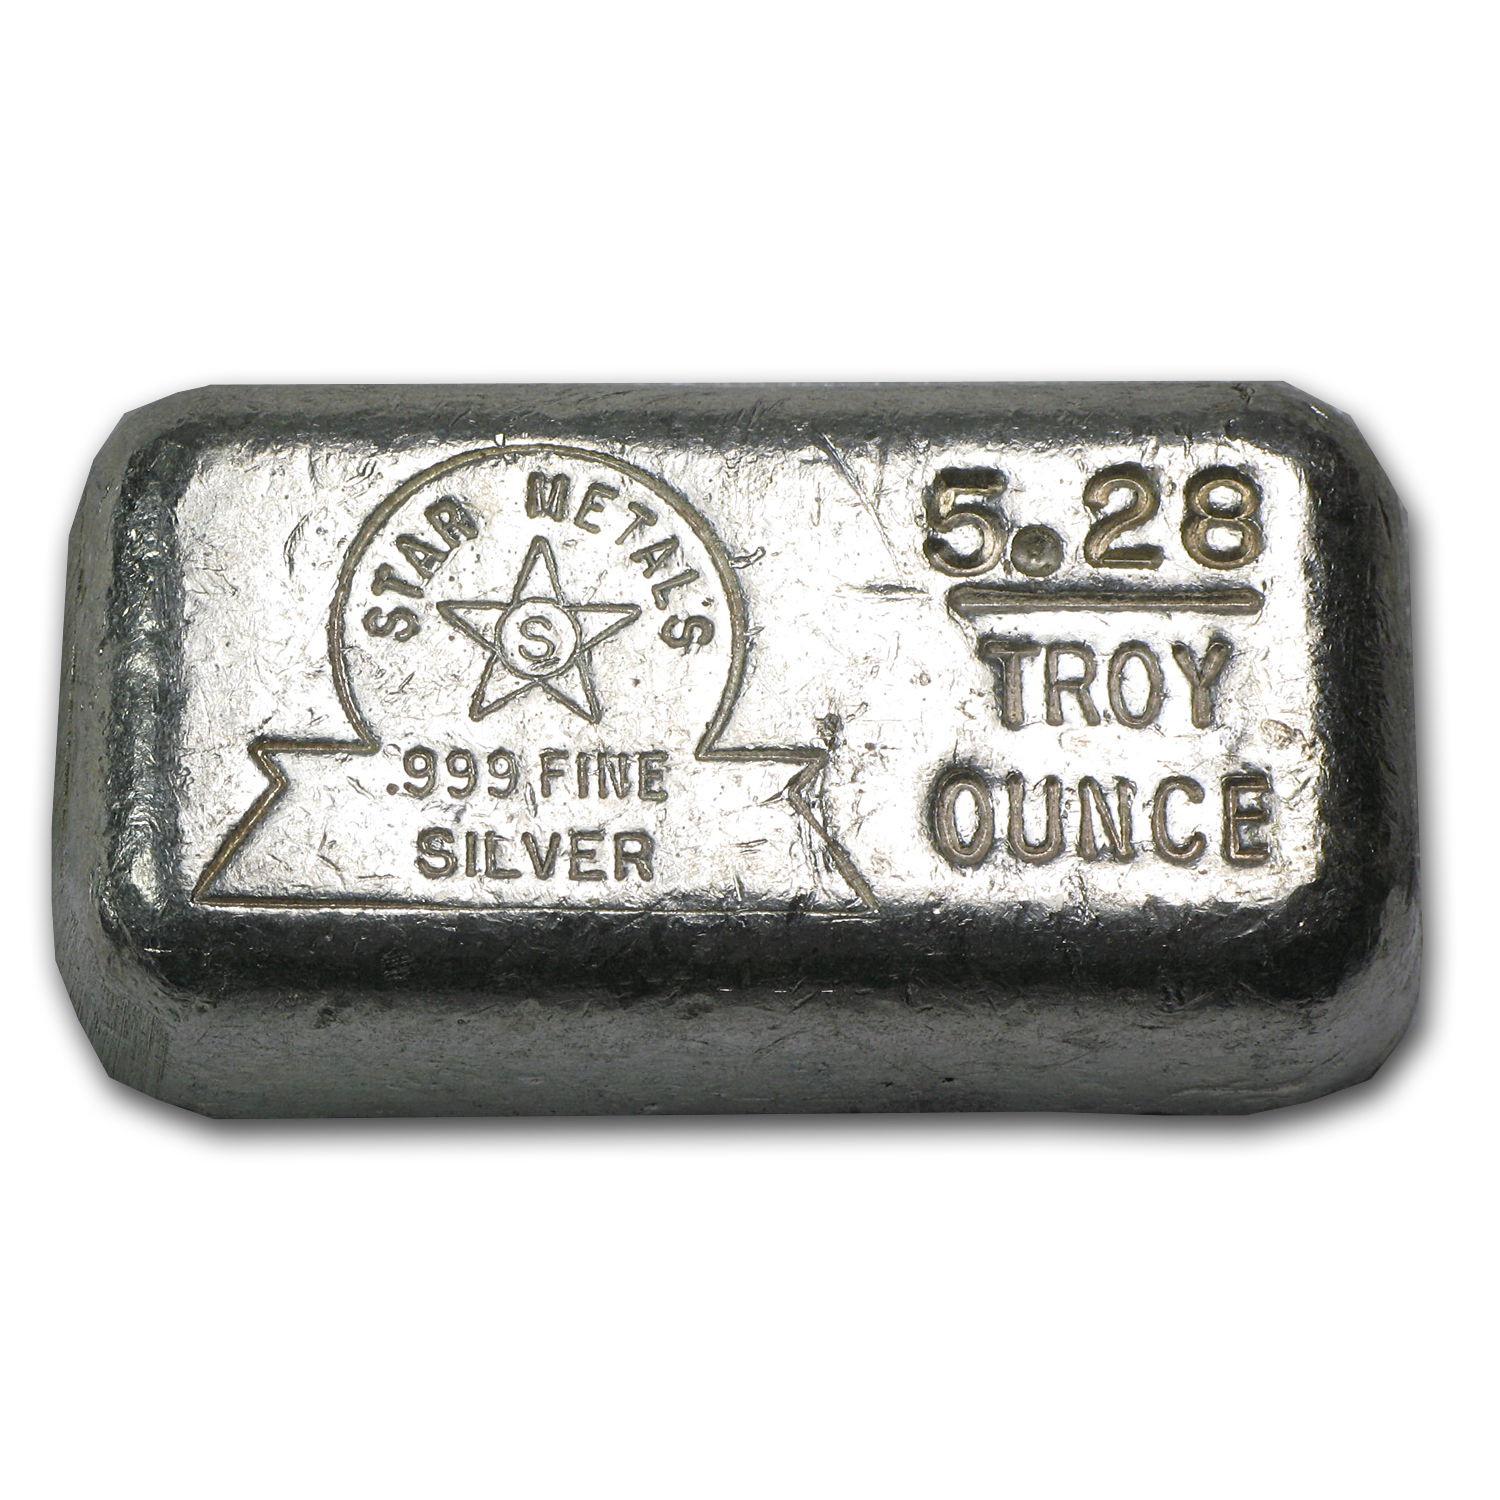 5.28 oz Silver Bars - Star Metals